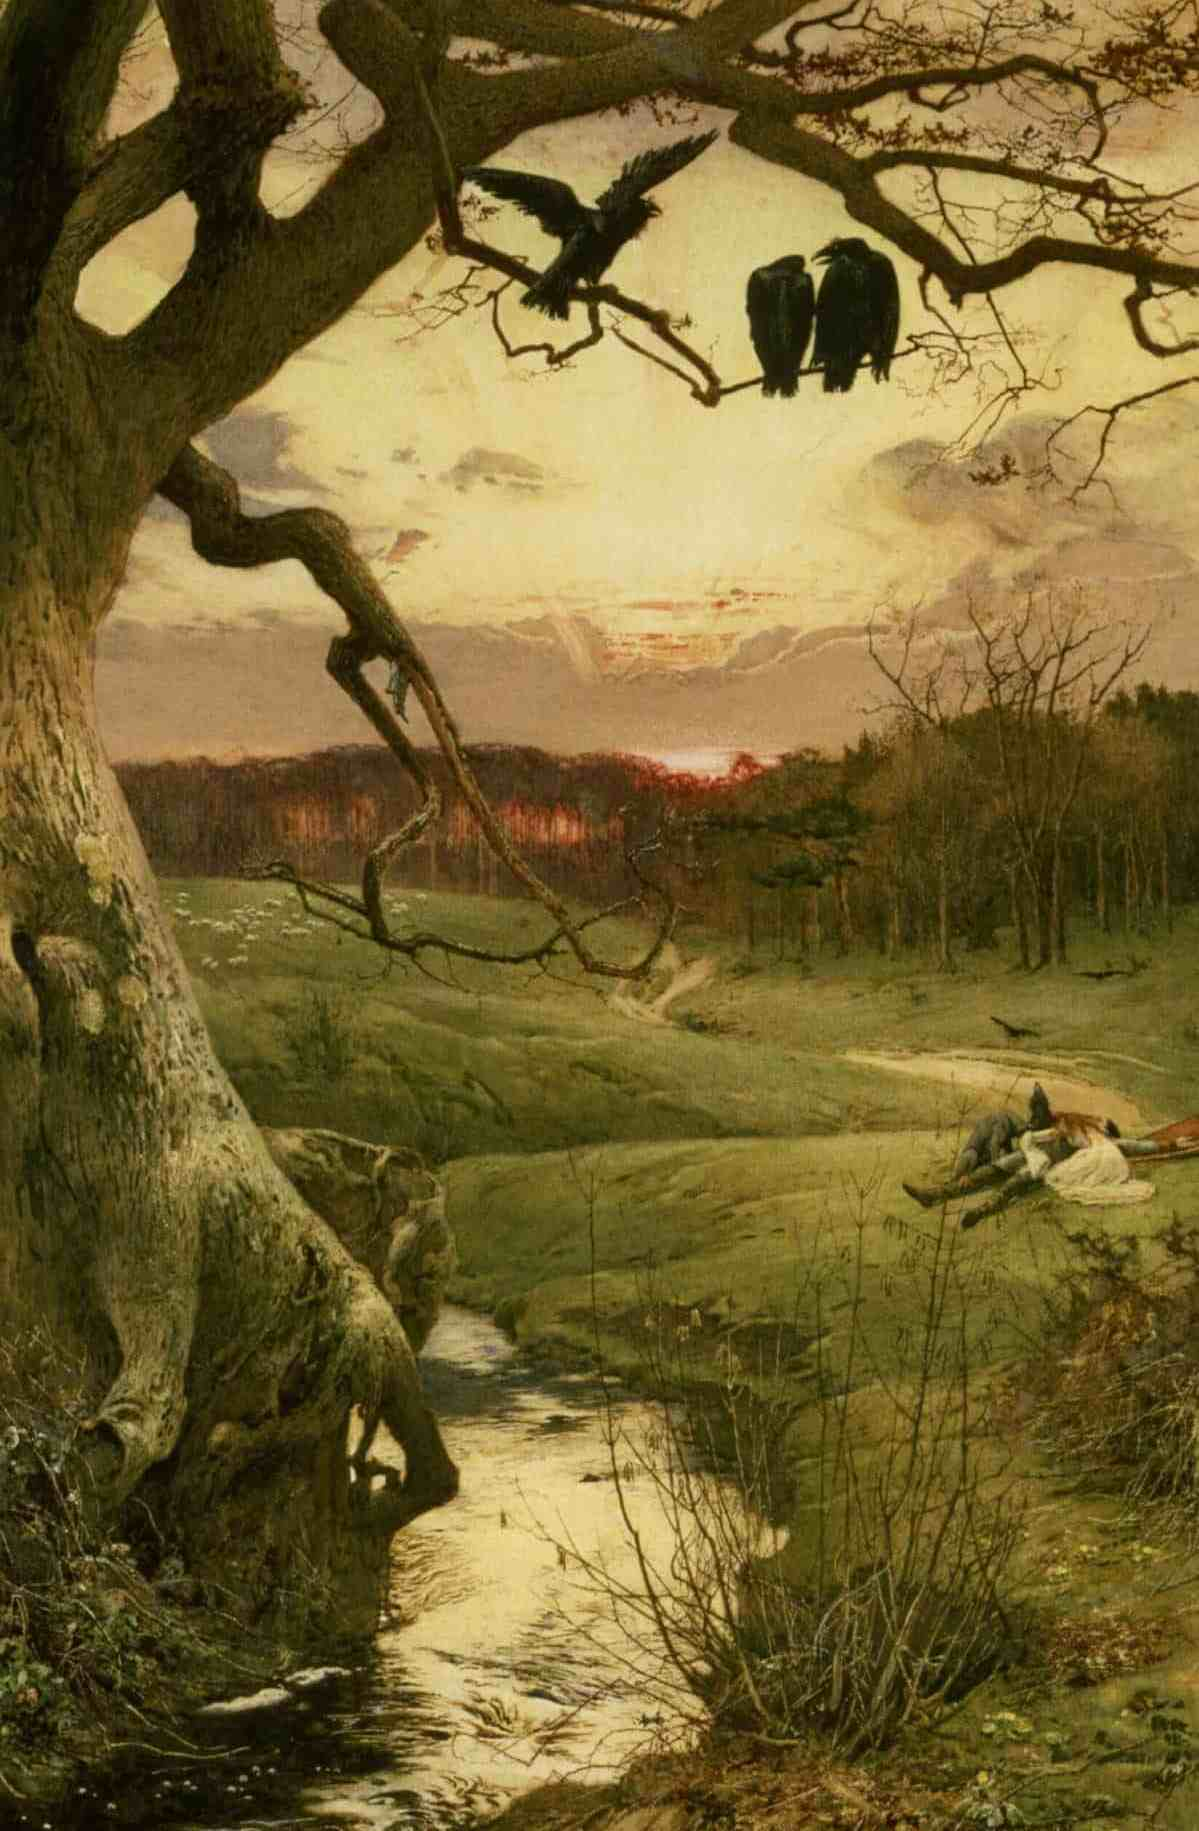 The Three Ravens Painting Image